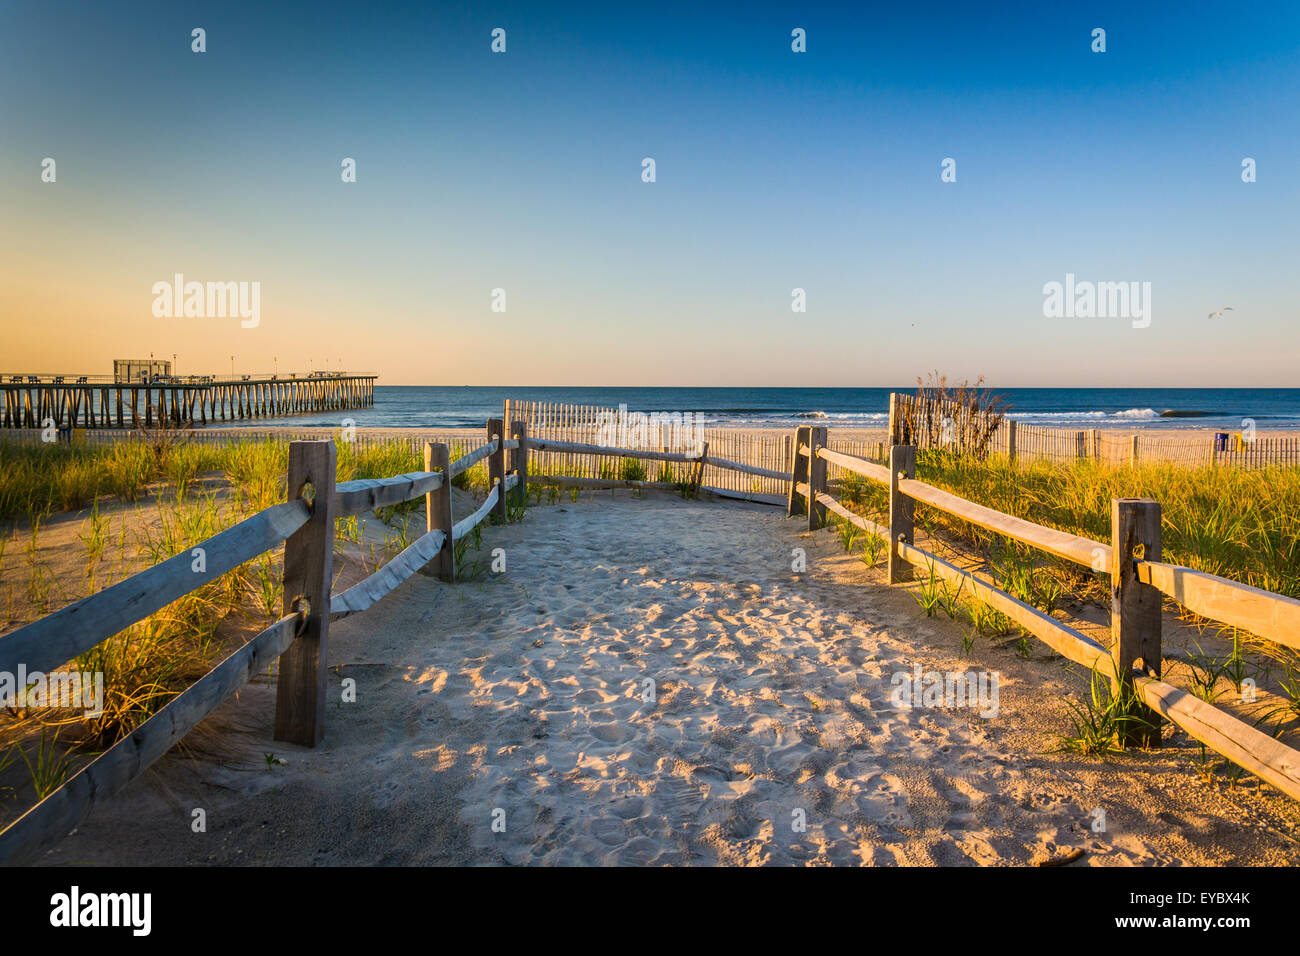 Path over sand dunes to the Atlantic Ocean at sunrise in Ventnor City, New Jersey. - Stock Image